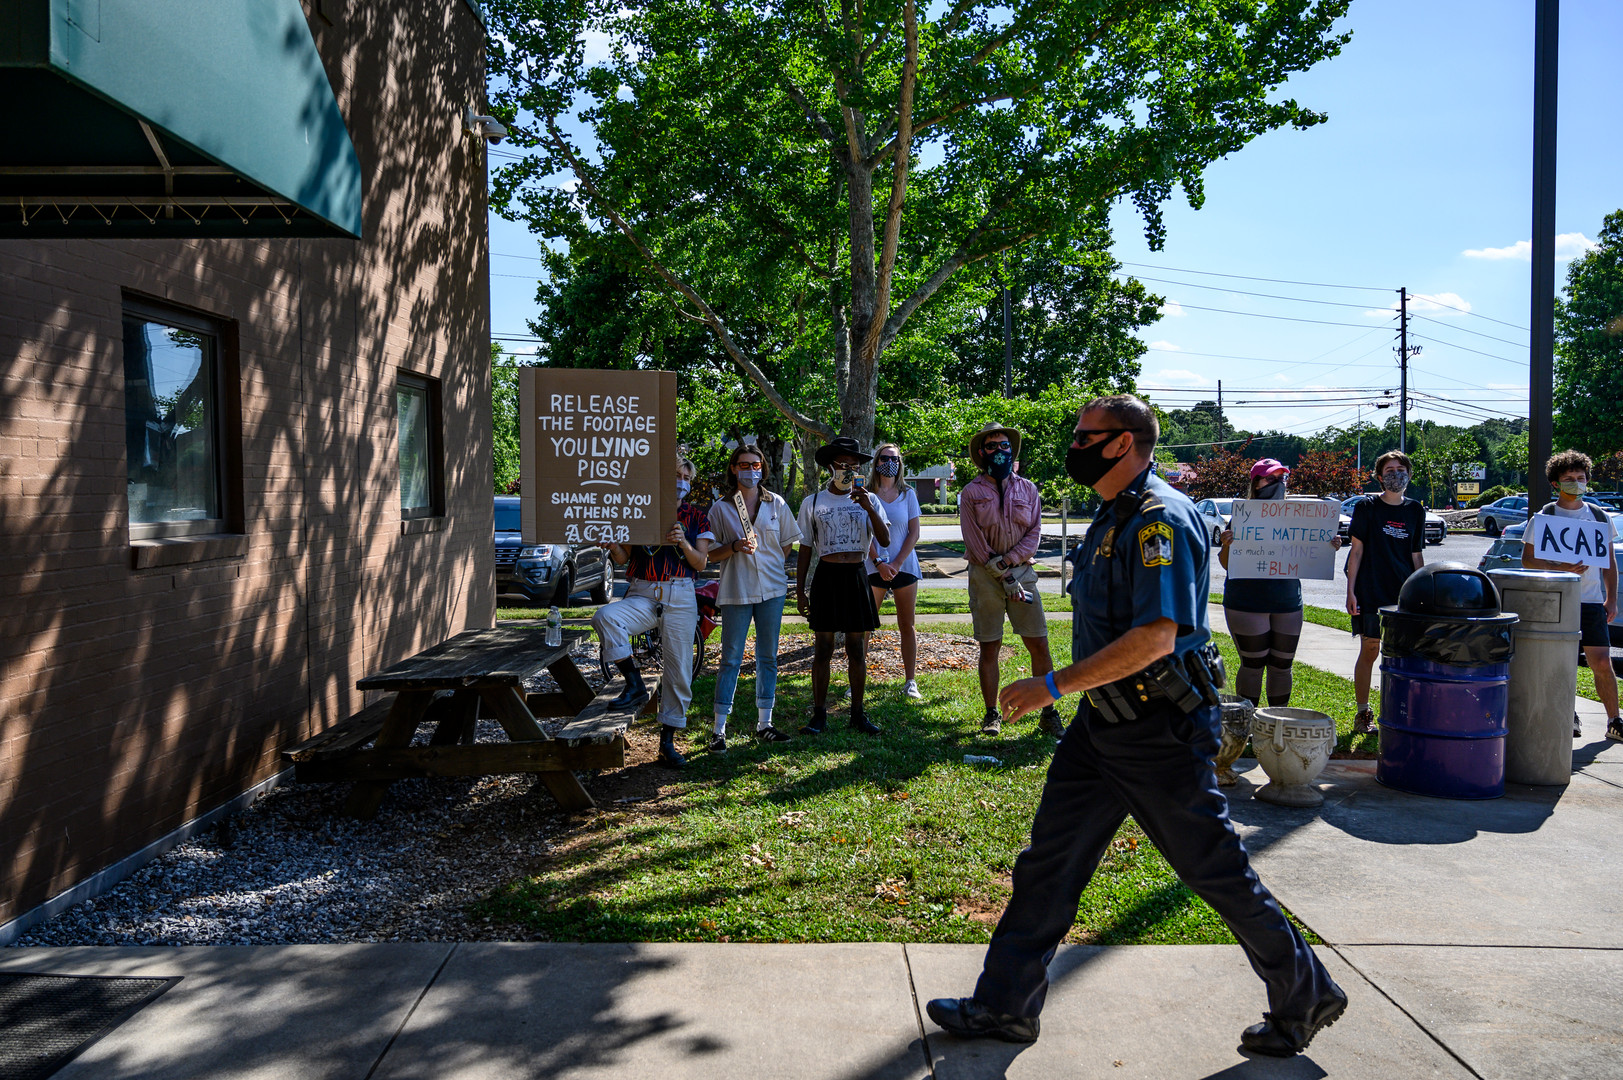 An Athens-Clarke County police officer enters the East Precinct building on Friday, June 12, 2020 in Athens, Georgia. Protesters holding signs and chanting for the release of footage from the night they were tear gassed waited outside the building for officers to exit for the day.